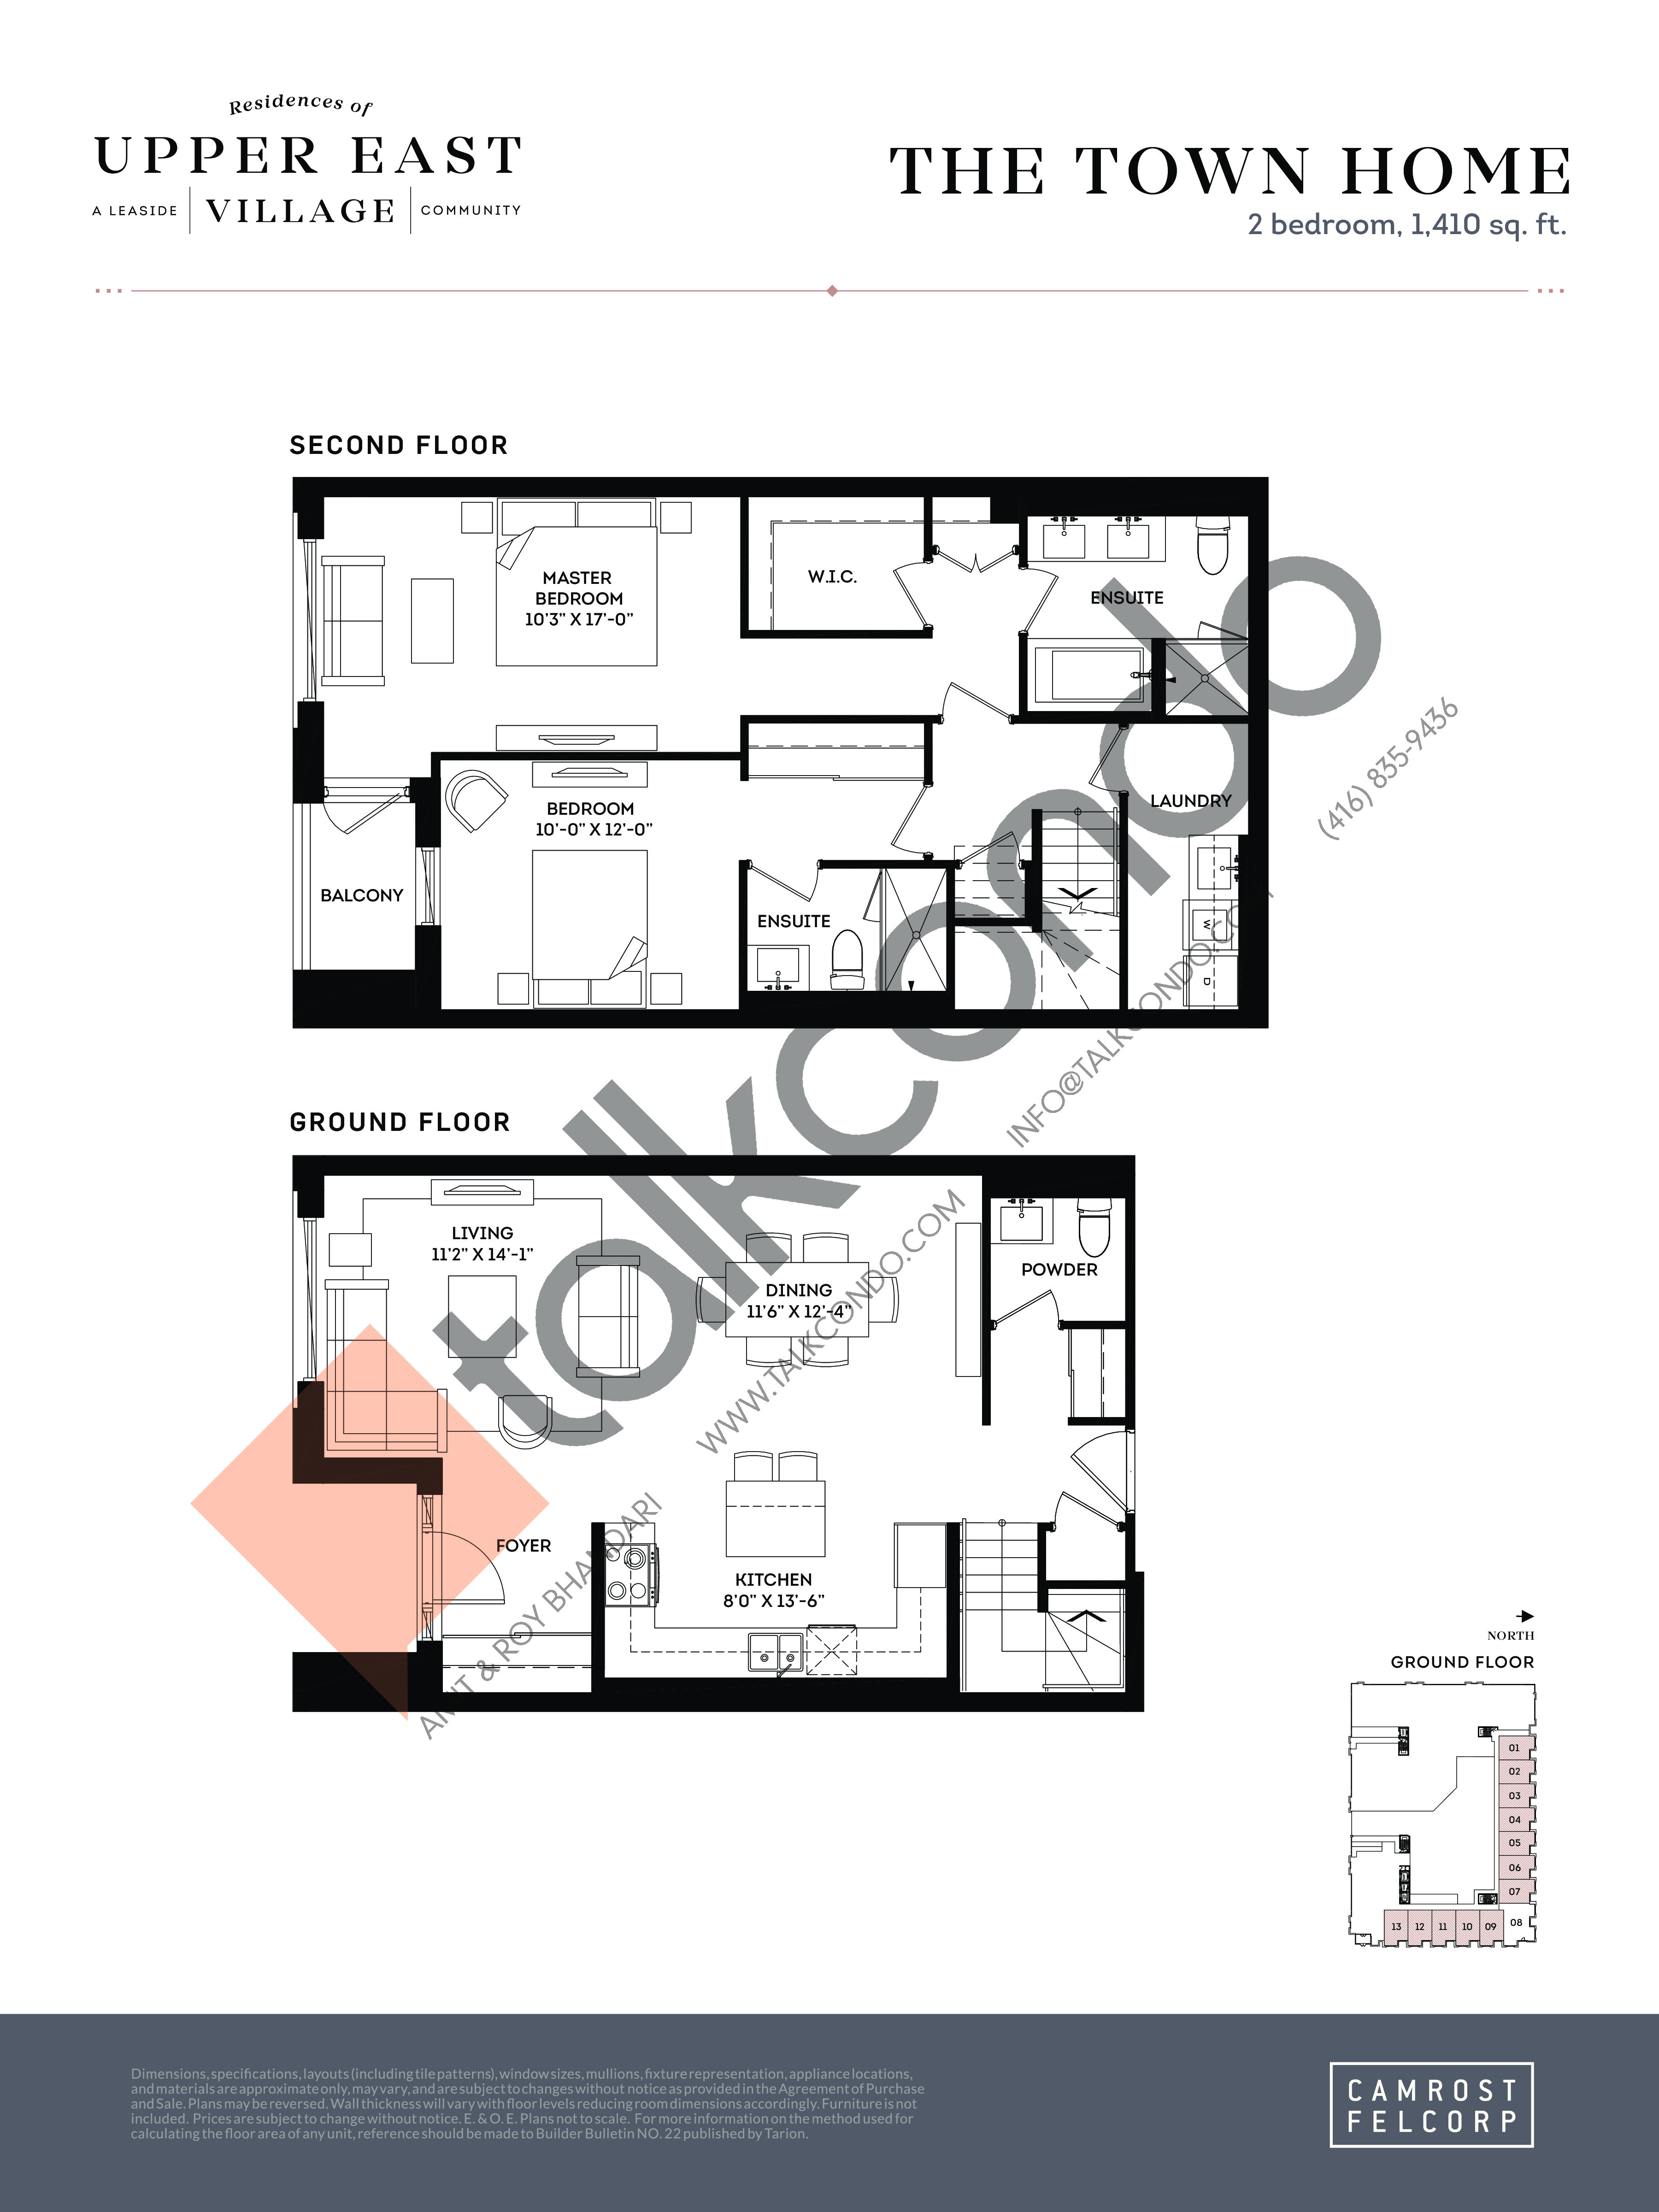 The Town Home Floor Plan at Upper East Village Condos - 1410 sq.ft